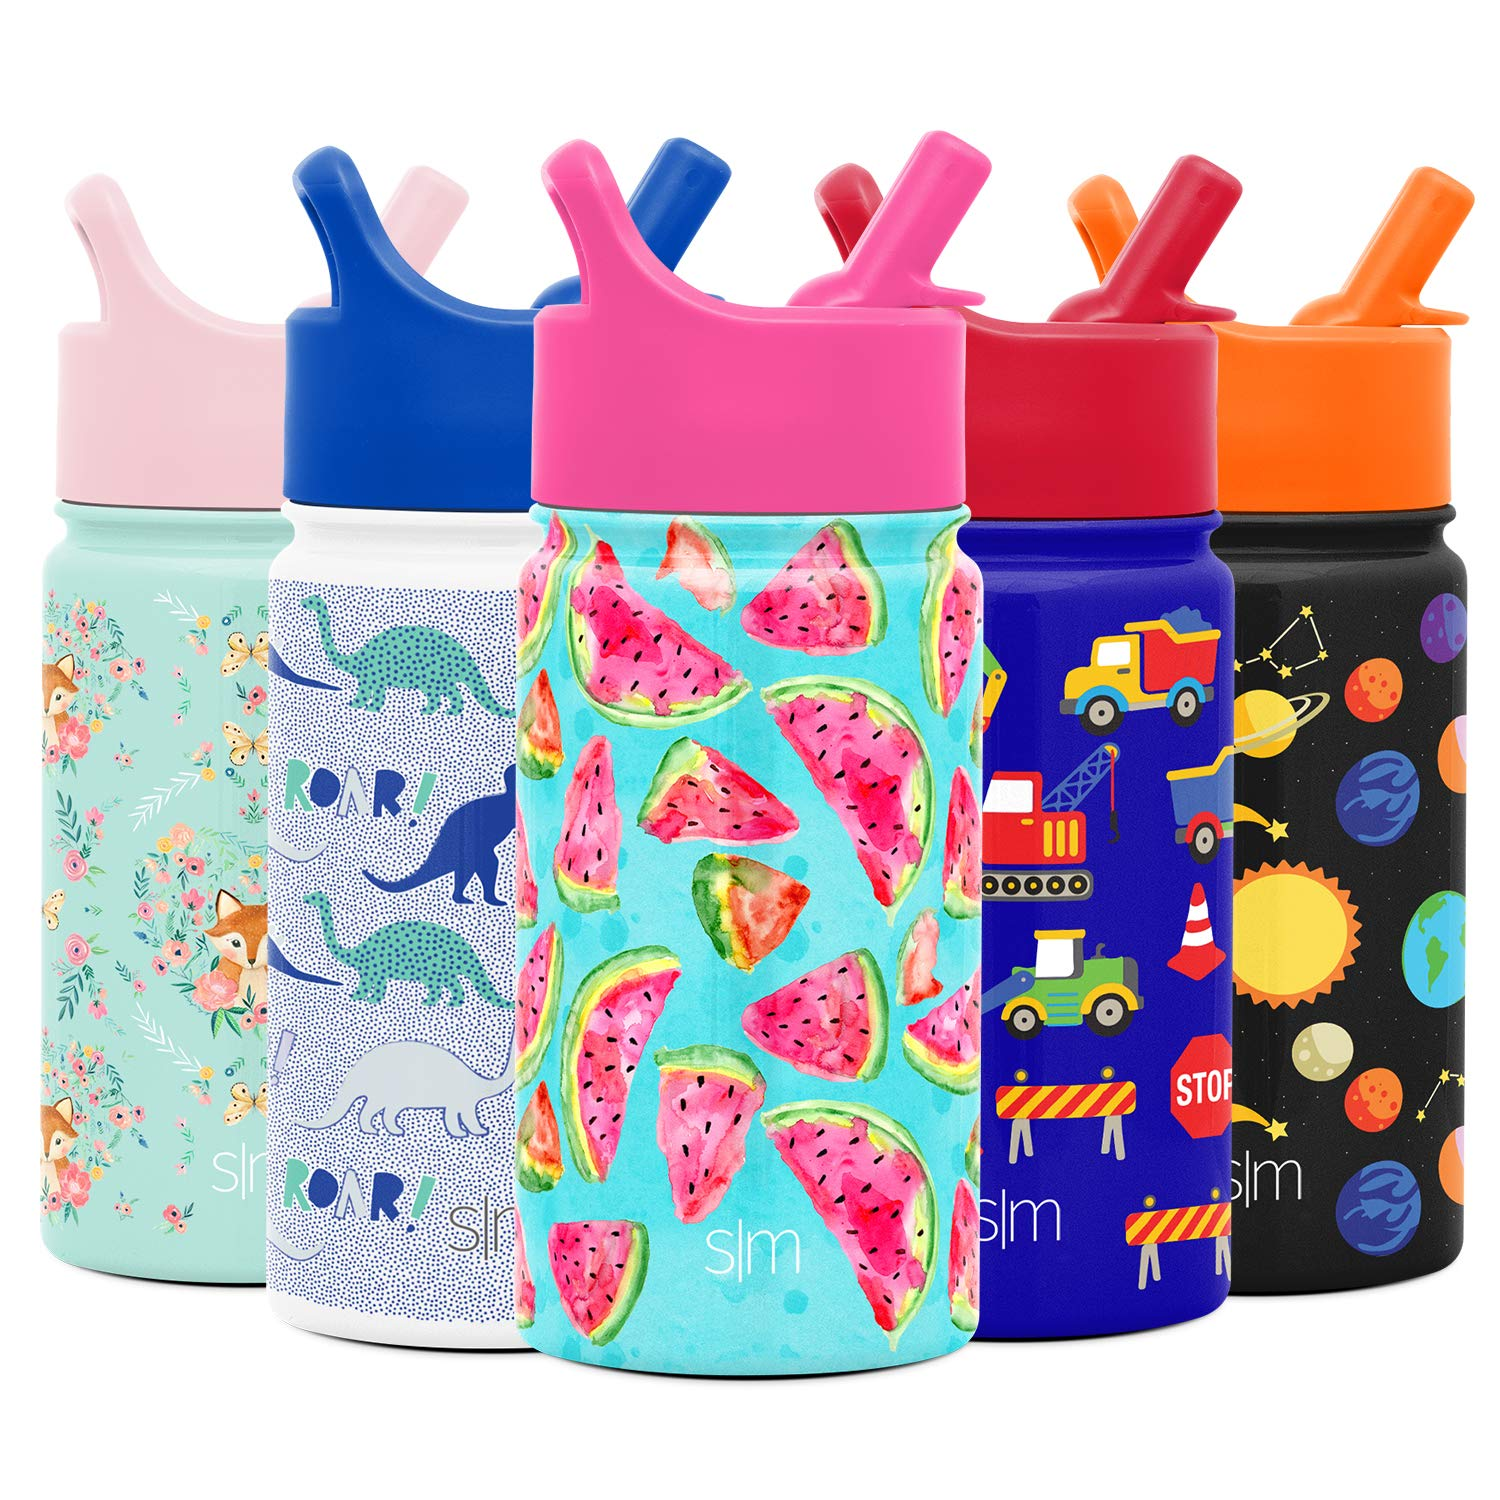 Simple Modern 14oz Summit Kids Water Bottle Thermos with Straw Lid - Dishwasher Safe Vacuum Insulated Double Wall Tumbler Travel Cup 18/8 Stainless Steel -Watermelon Splash